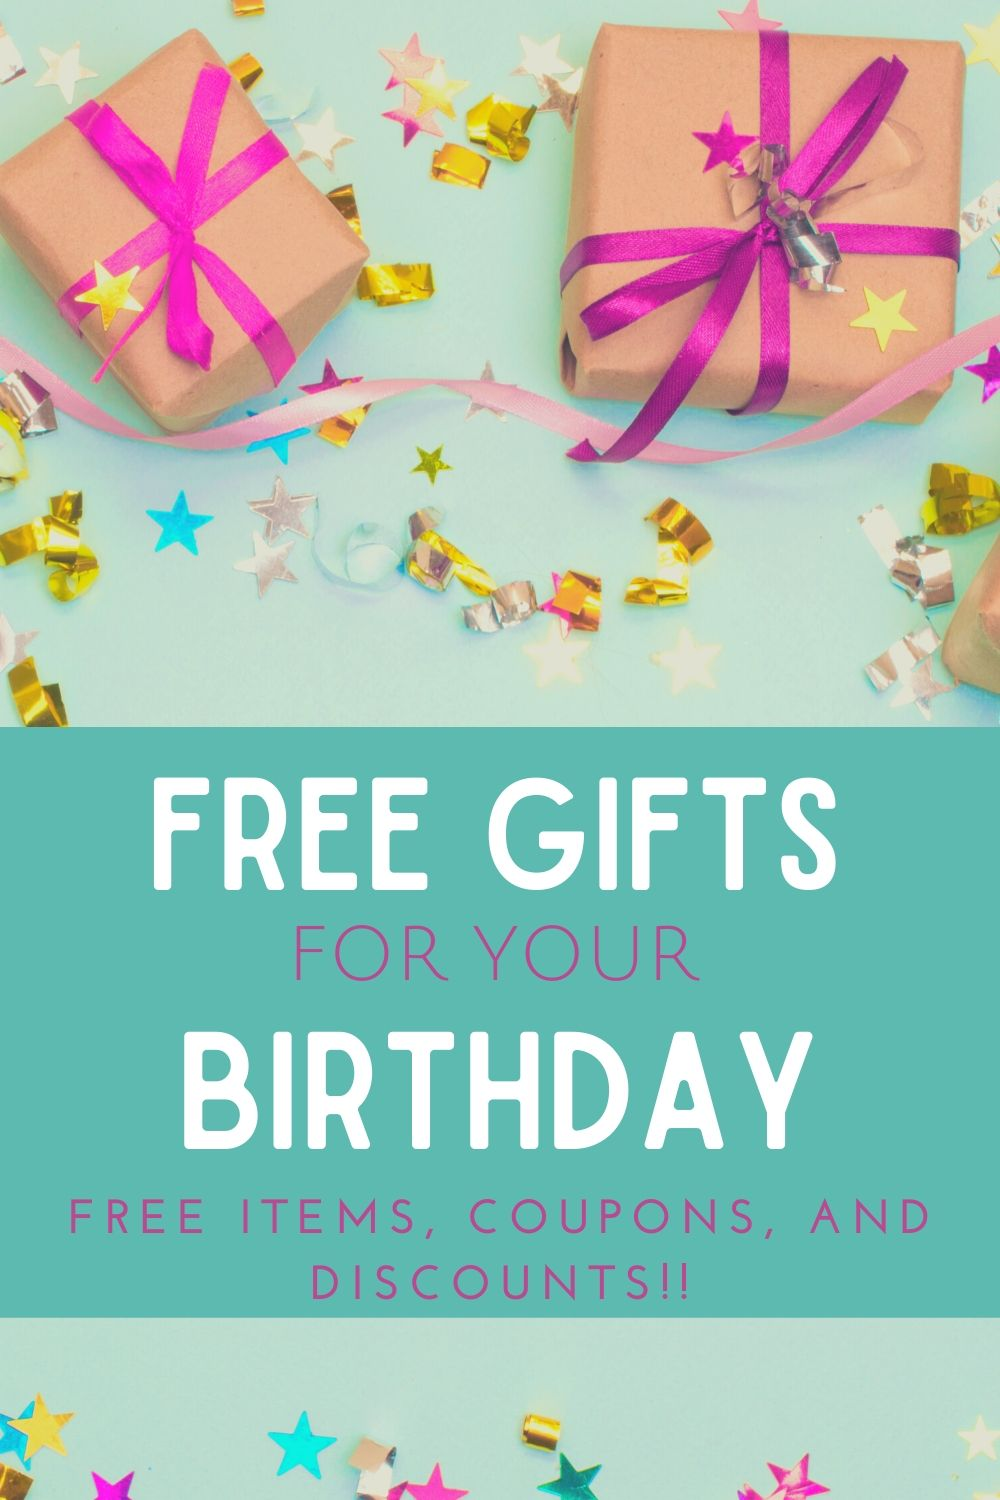 Free gifts on your birthday